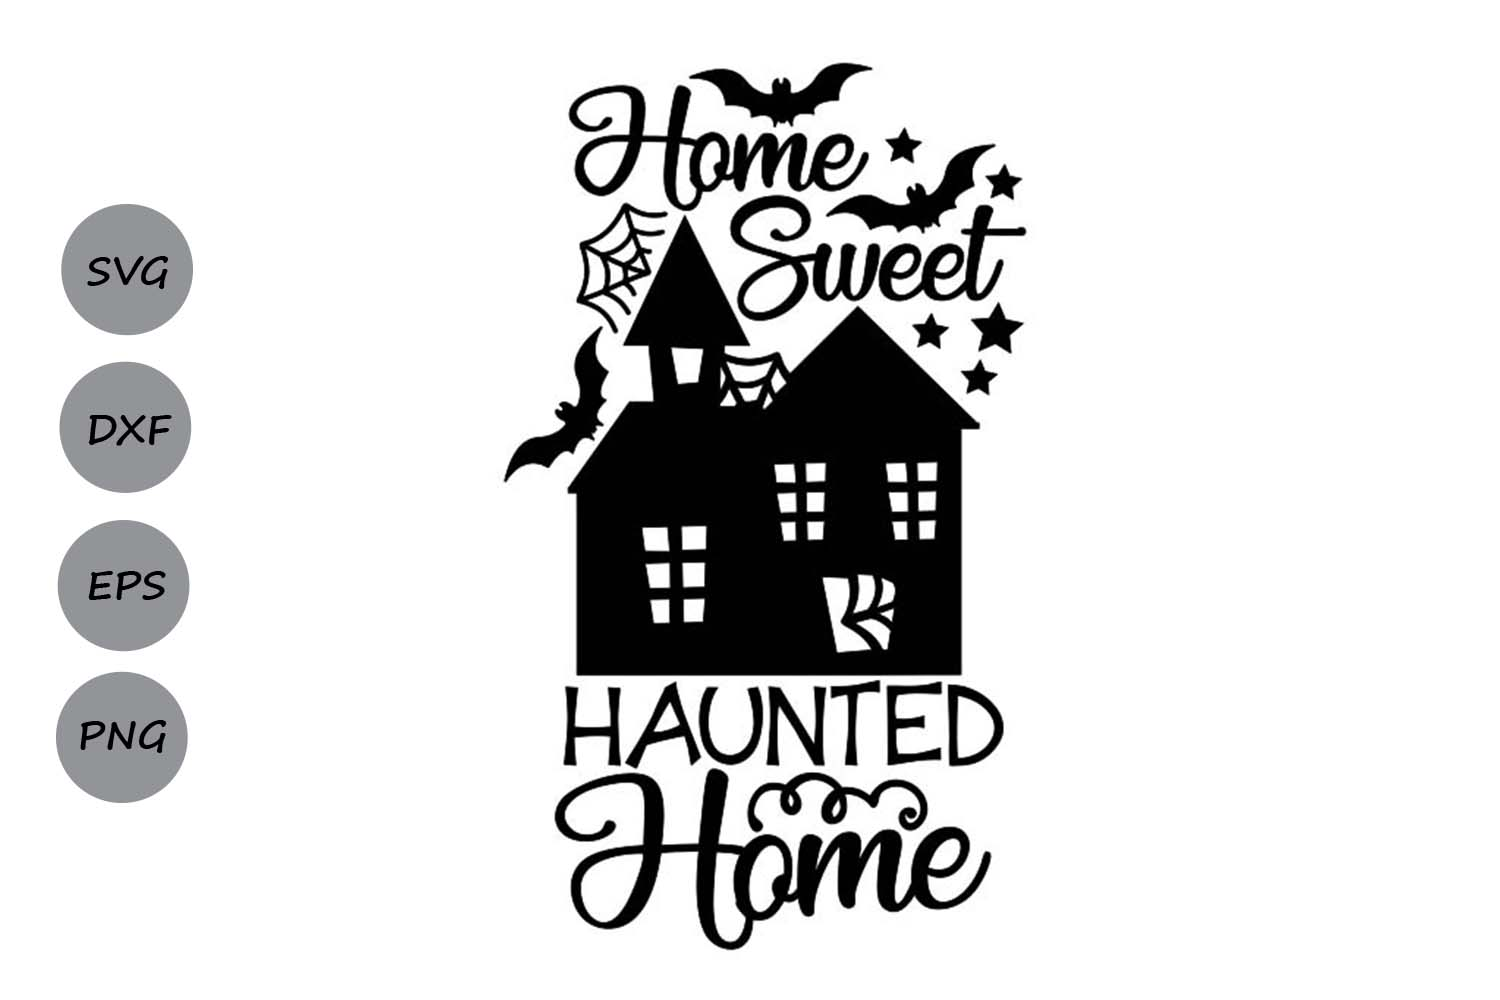 Download Free Home Sweet Haunted Home Graphic By Cosmosfineart Creative Fabrica for Cricut Explore, Silhouette and other cutting machines.